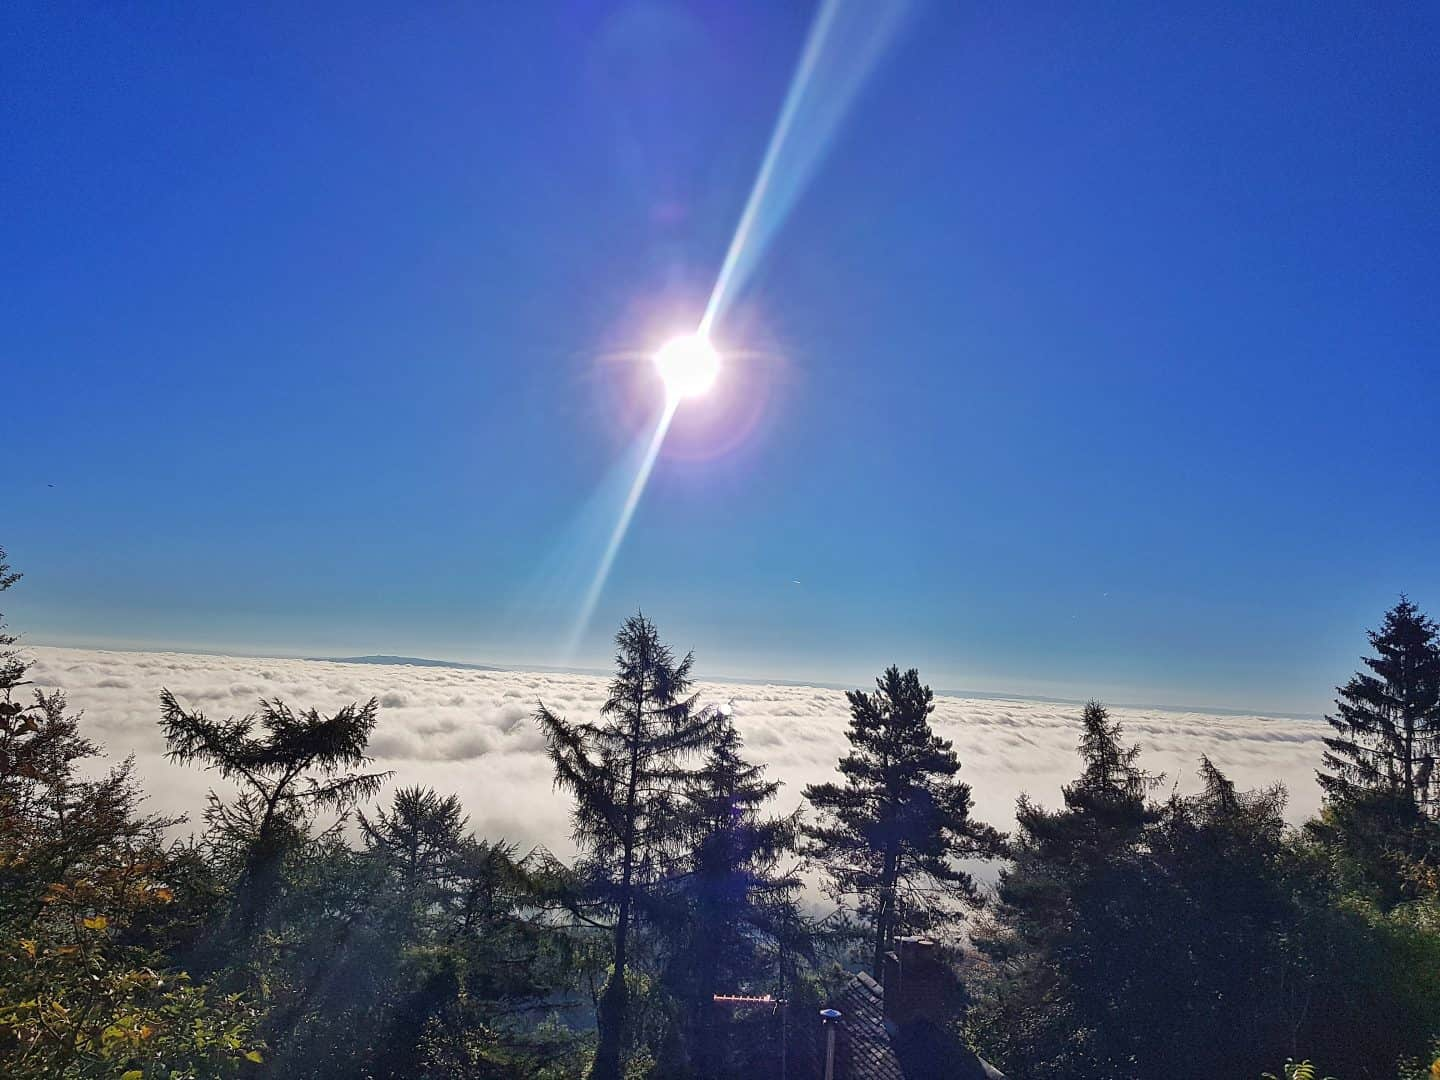 View above the clouds from the Wyche Inn on the Malvern Hills with blue sky, sun in the centre and pine trees in the foreground